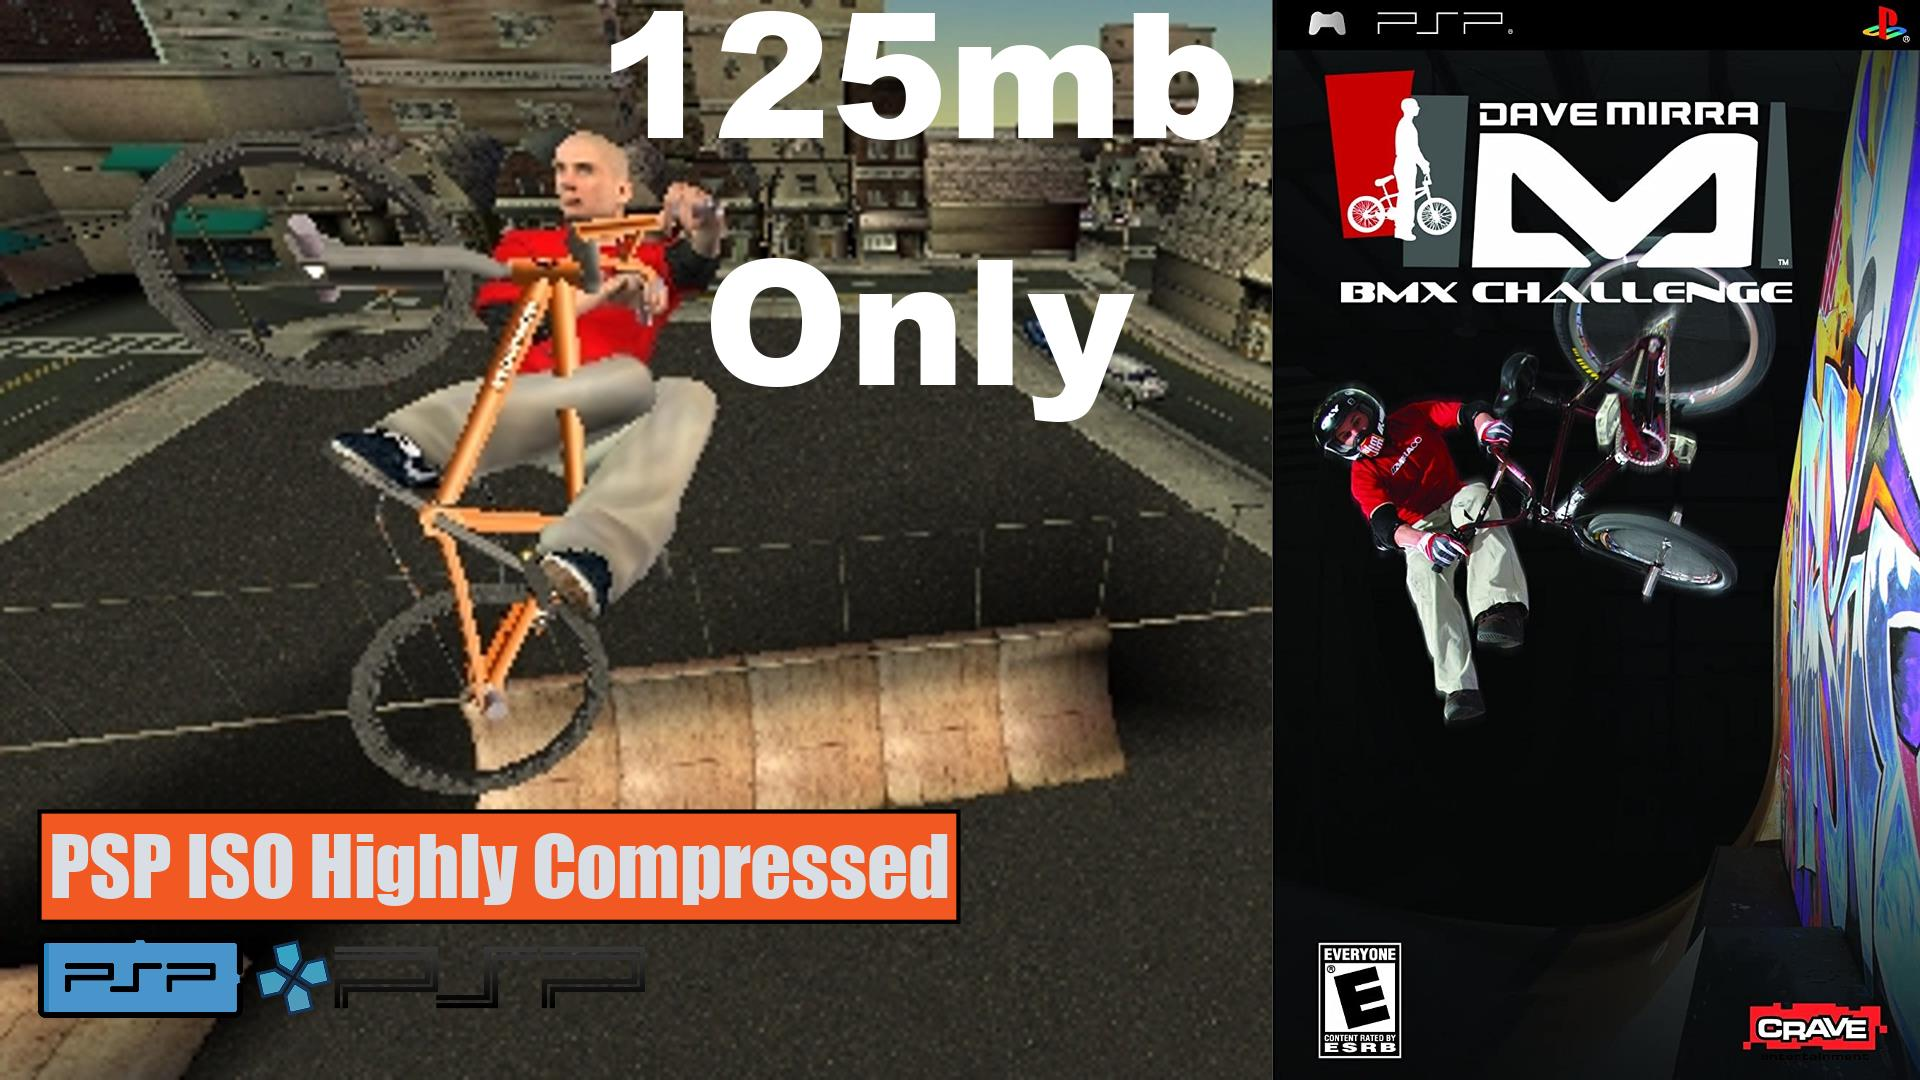 Dave Mirra BMX Challenge PSP ISO Highly Compressed